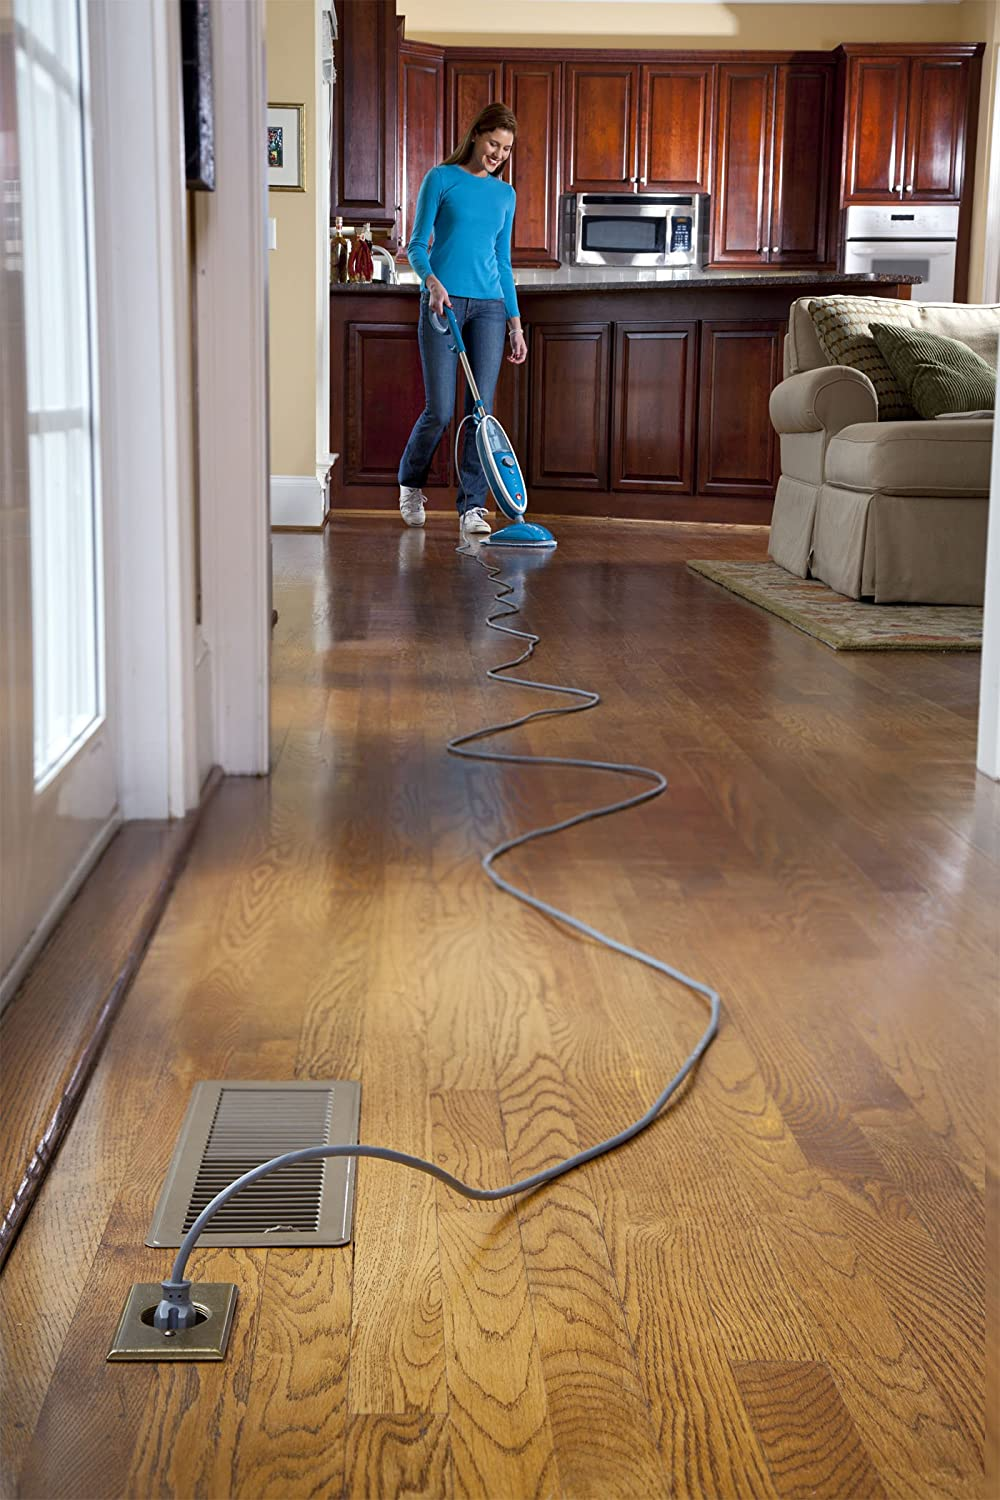 Amazon hoover steam mop twintank steam cleaner wh20200 home amazon hoover steam mop twintank steam cleaner wh20200 home kitchen dailygadgetfo Choice Image